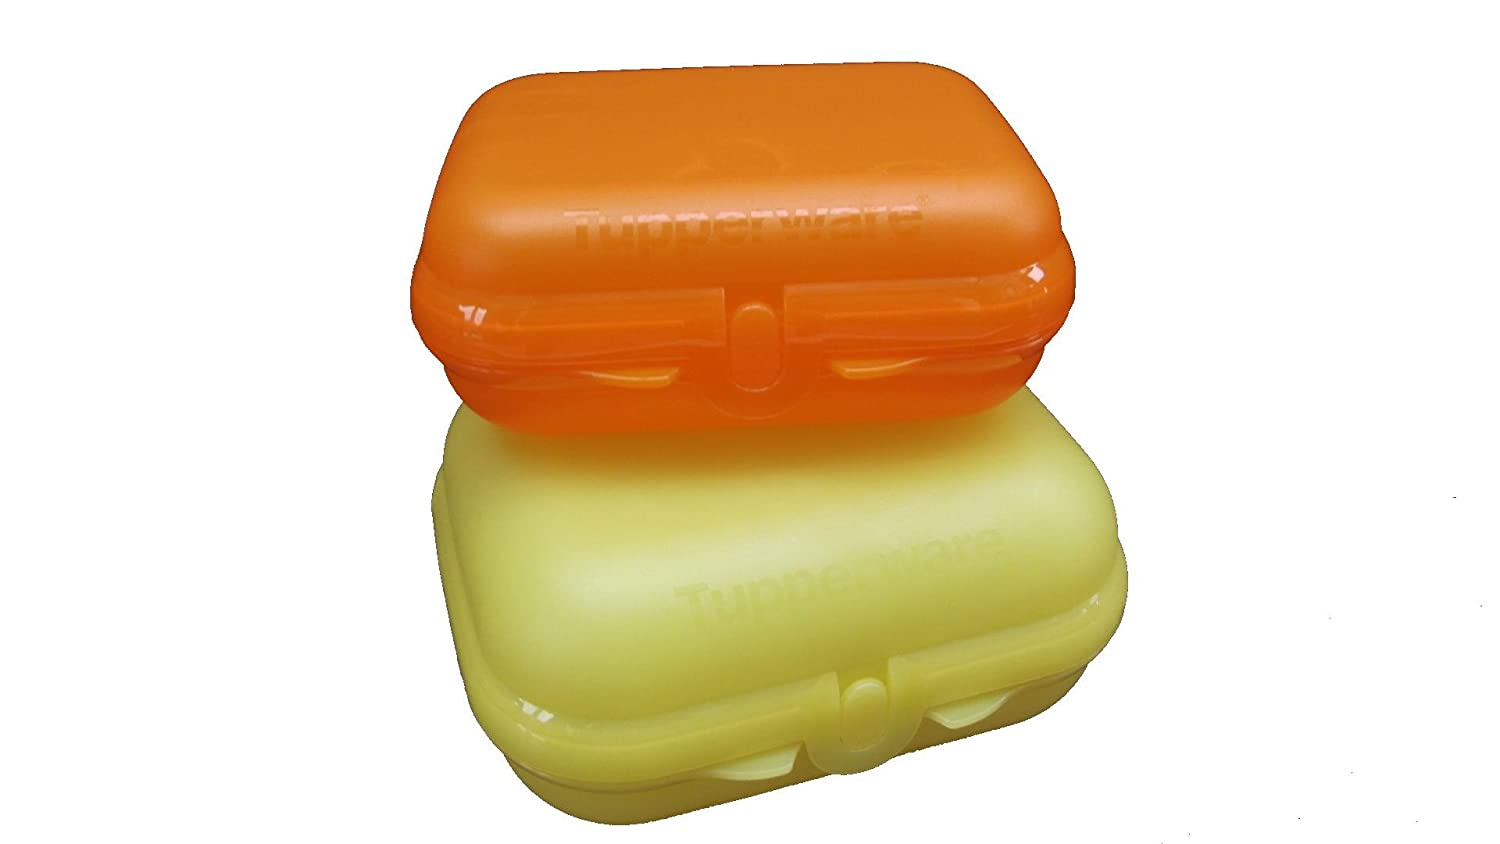 1a TUPPER A26 Twin-Set Schulbrotdosen-Set TWINS --- gelb-orange Tupperware